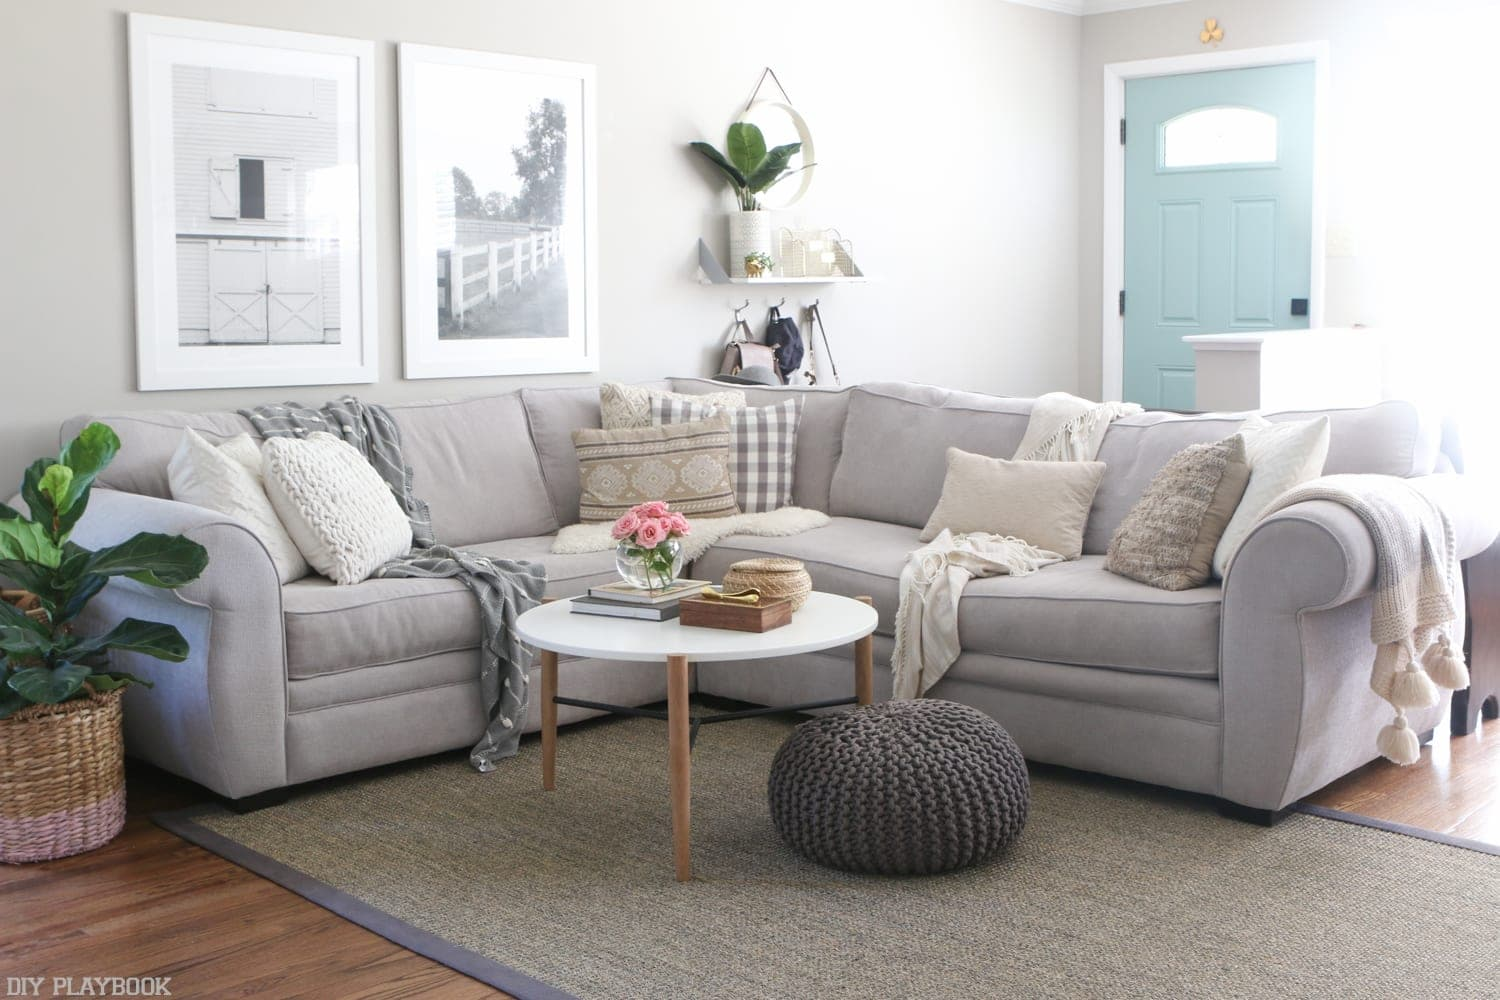 How to refresh and rejuvenate your couch cushions